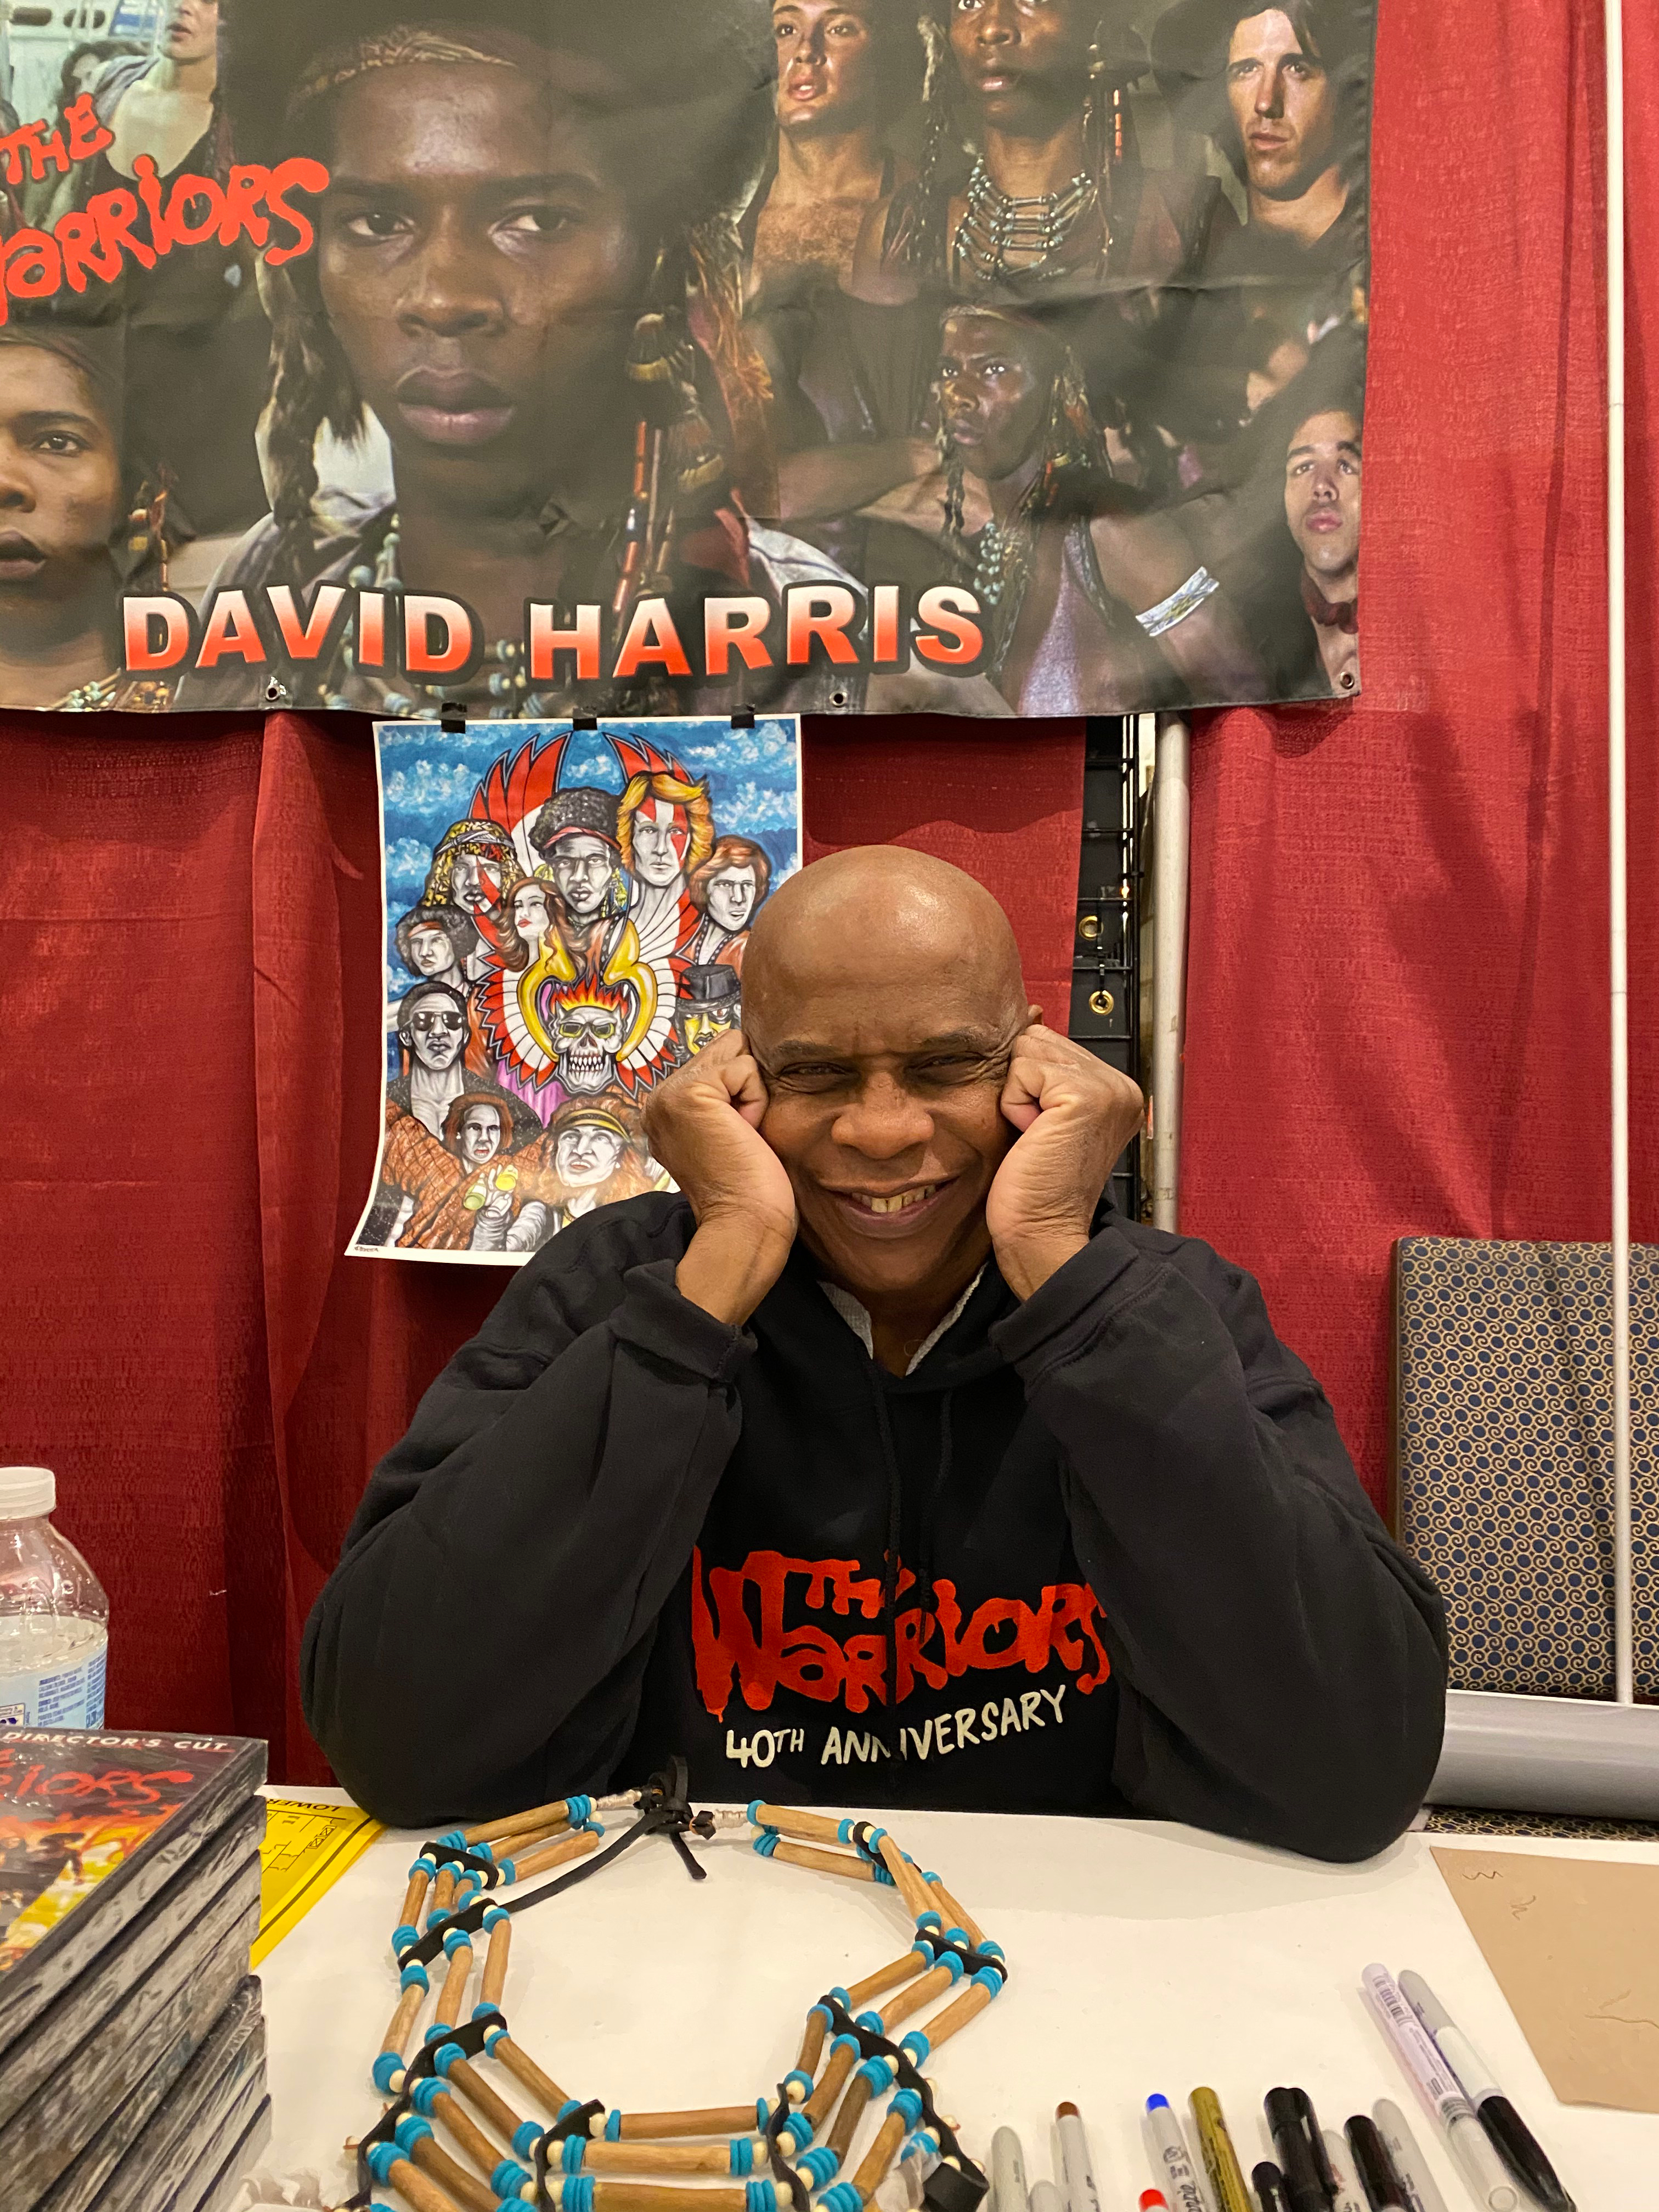 David Harris (The Warriors).